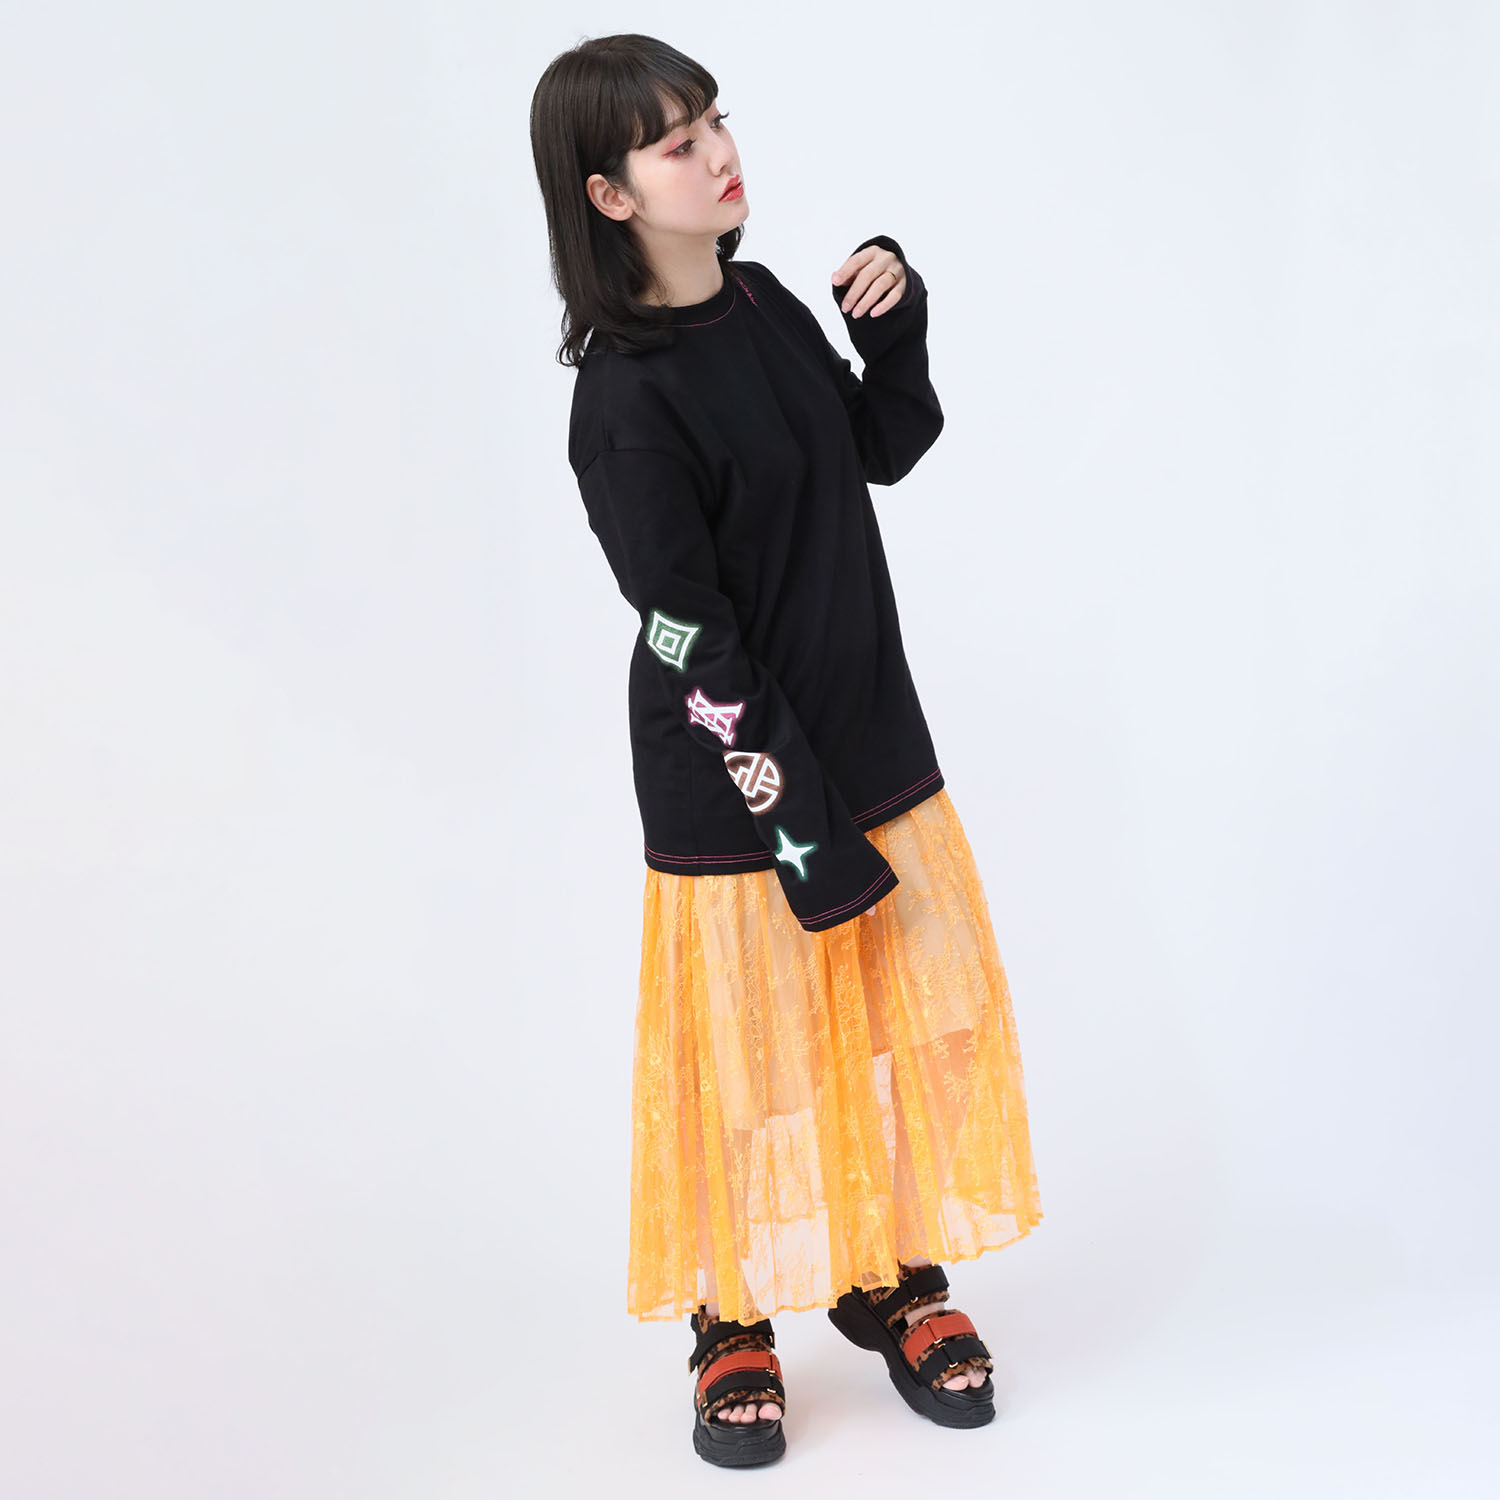 EVA Big Monogram Neon Long T-Shirt (BLACK)